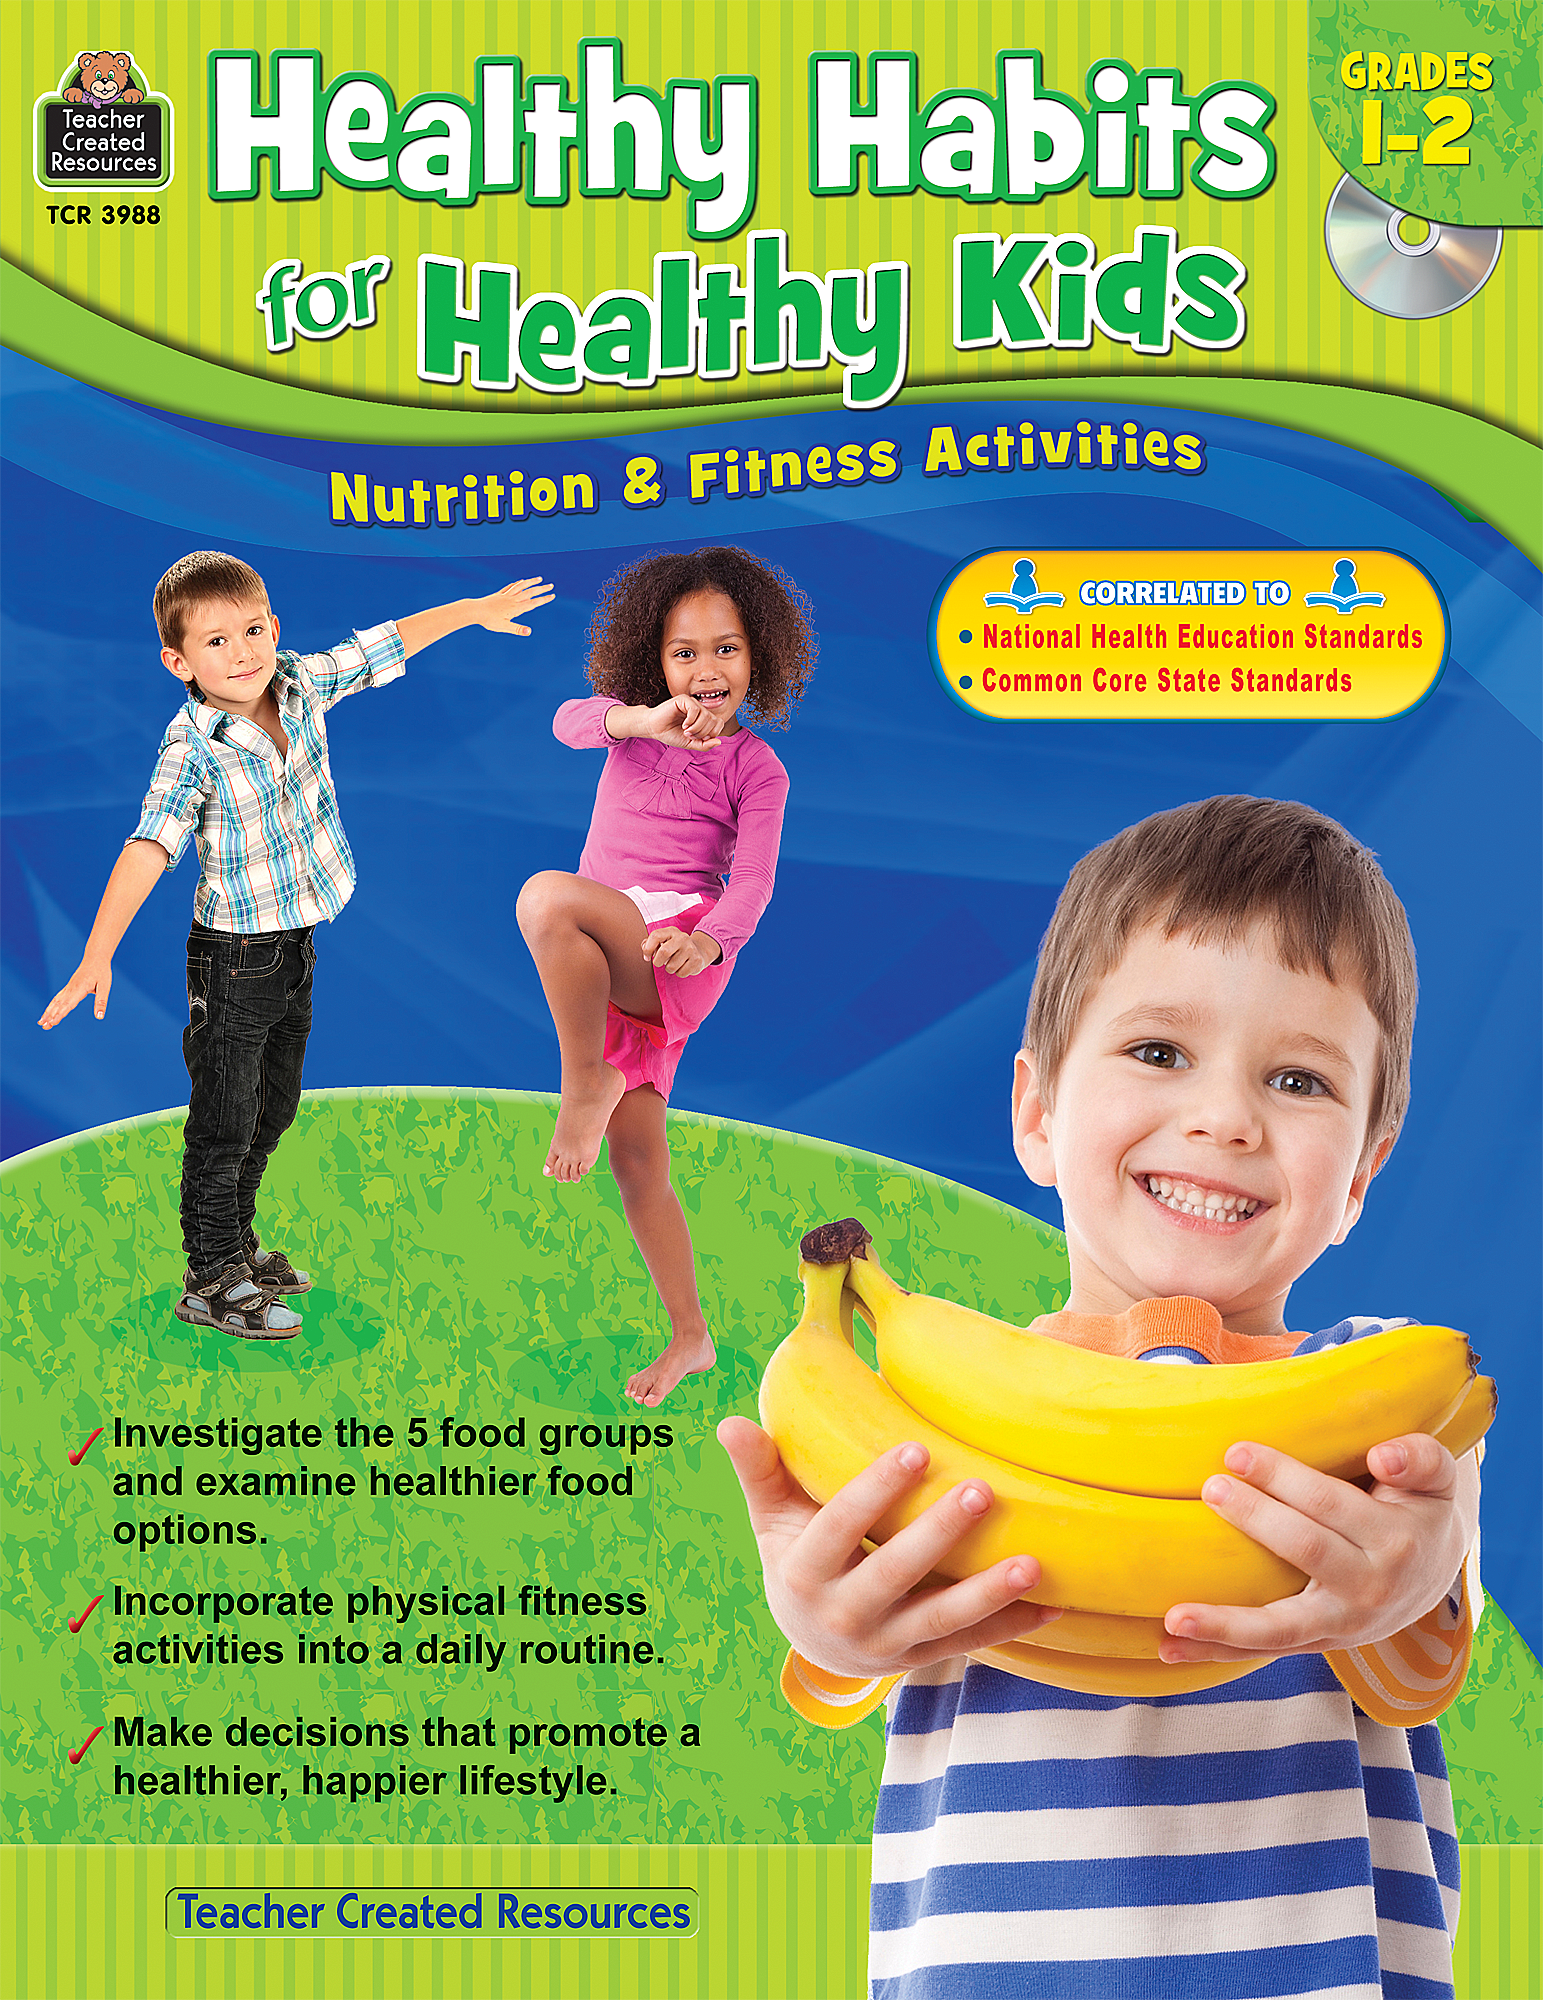 Healthy Habits For Healthy Kids Grade 1-2 - TCR3988 | Teacher Created  Resources - Good Habits For Kids PNG